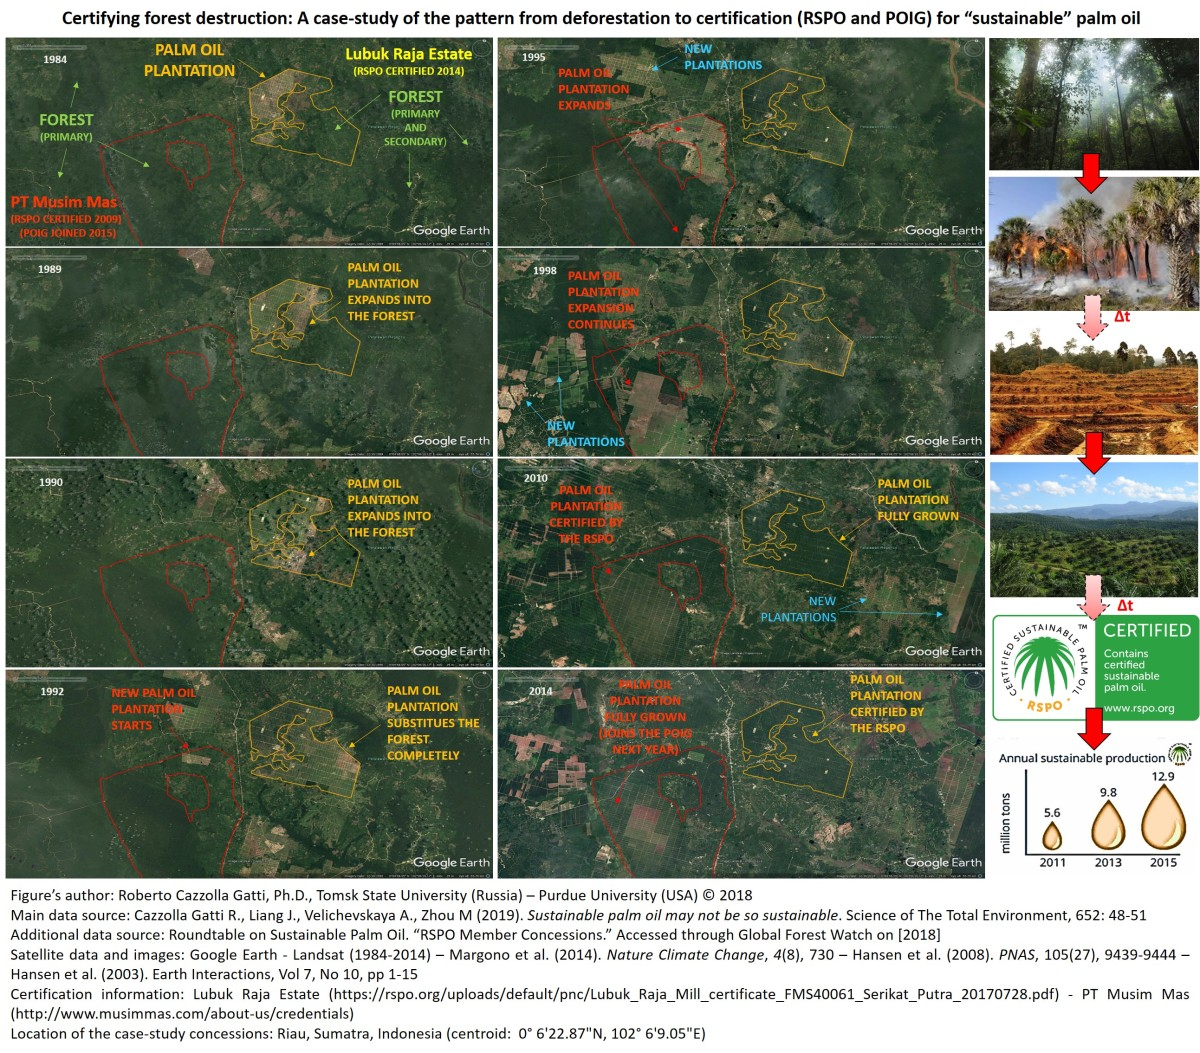 Sustainable palm oil: certifying forest destruction